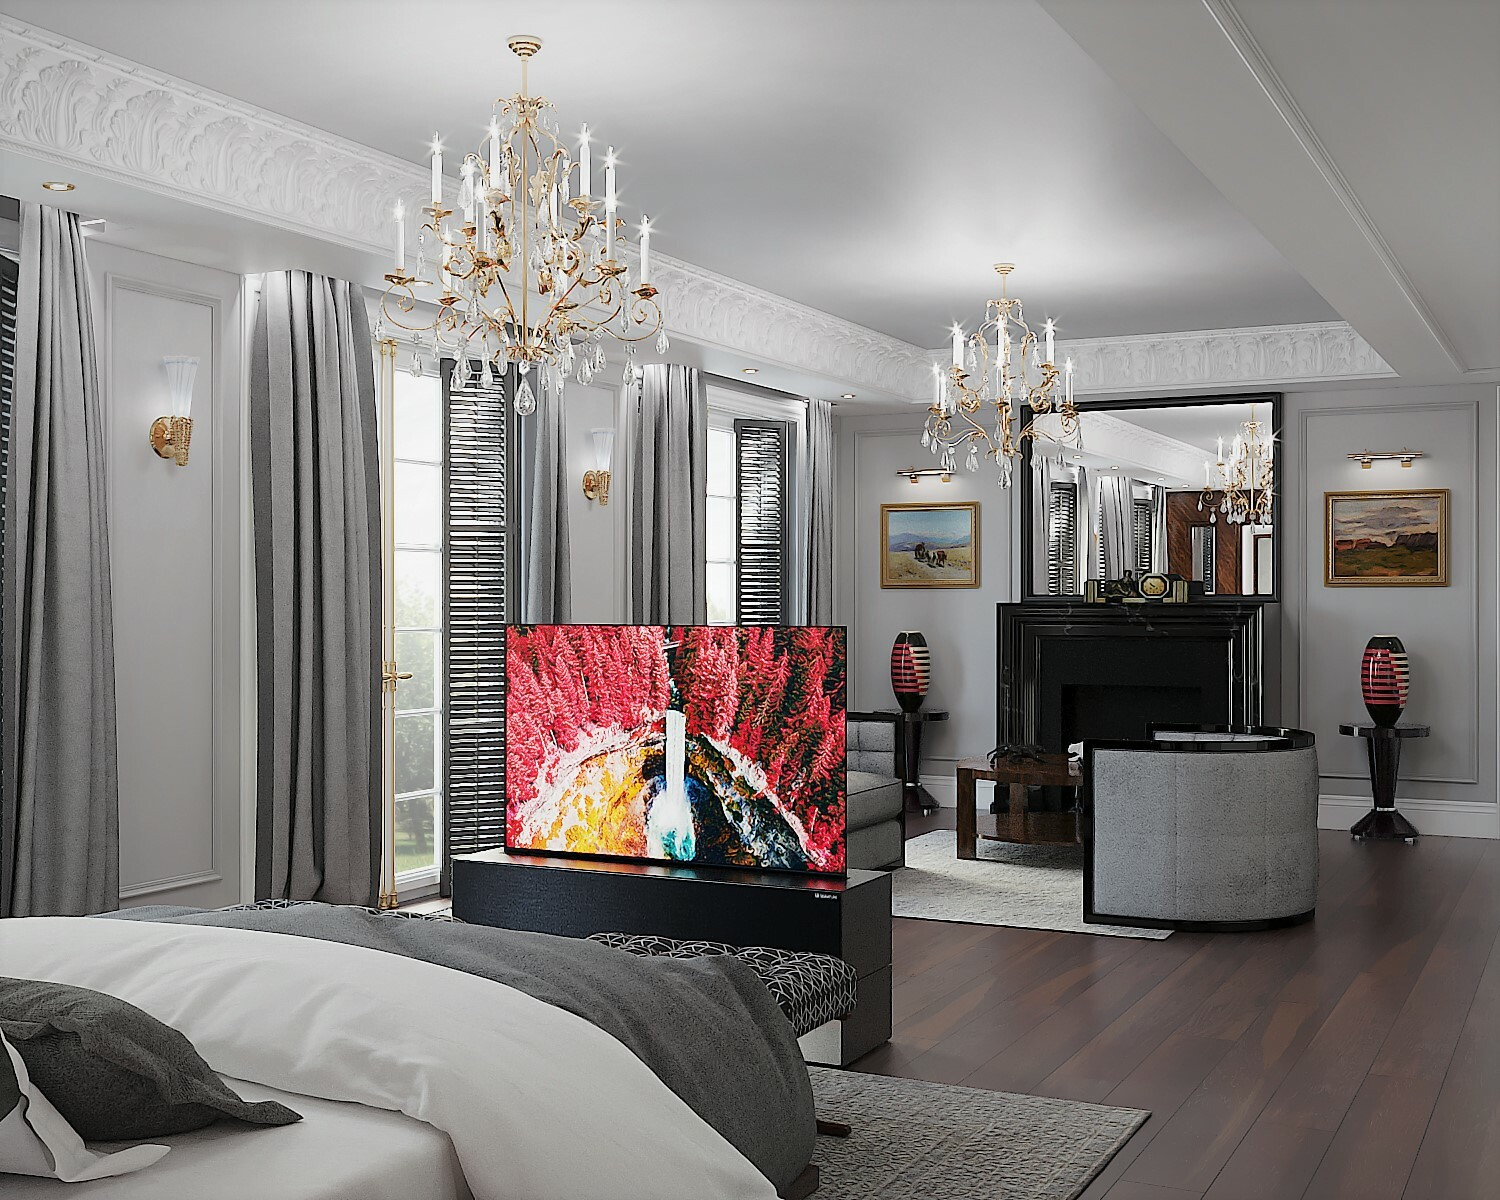 View of the TV with extended screen